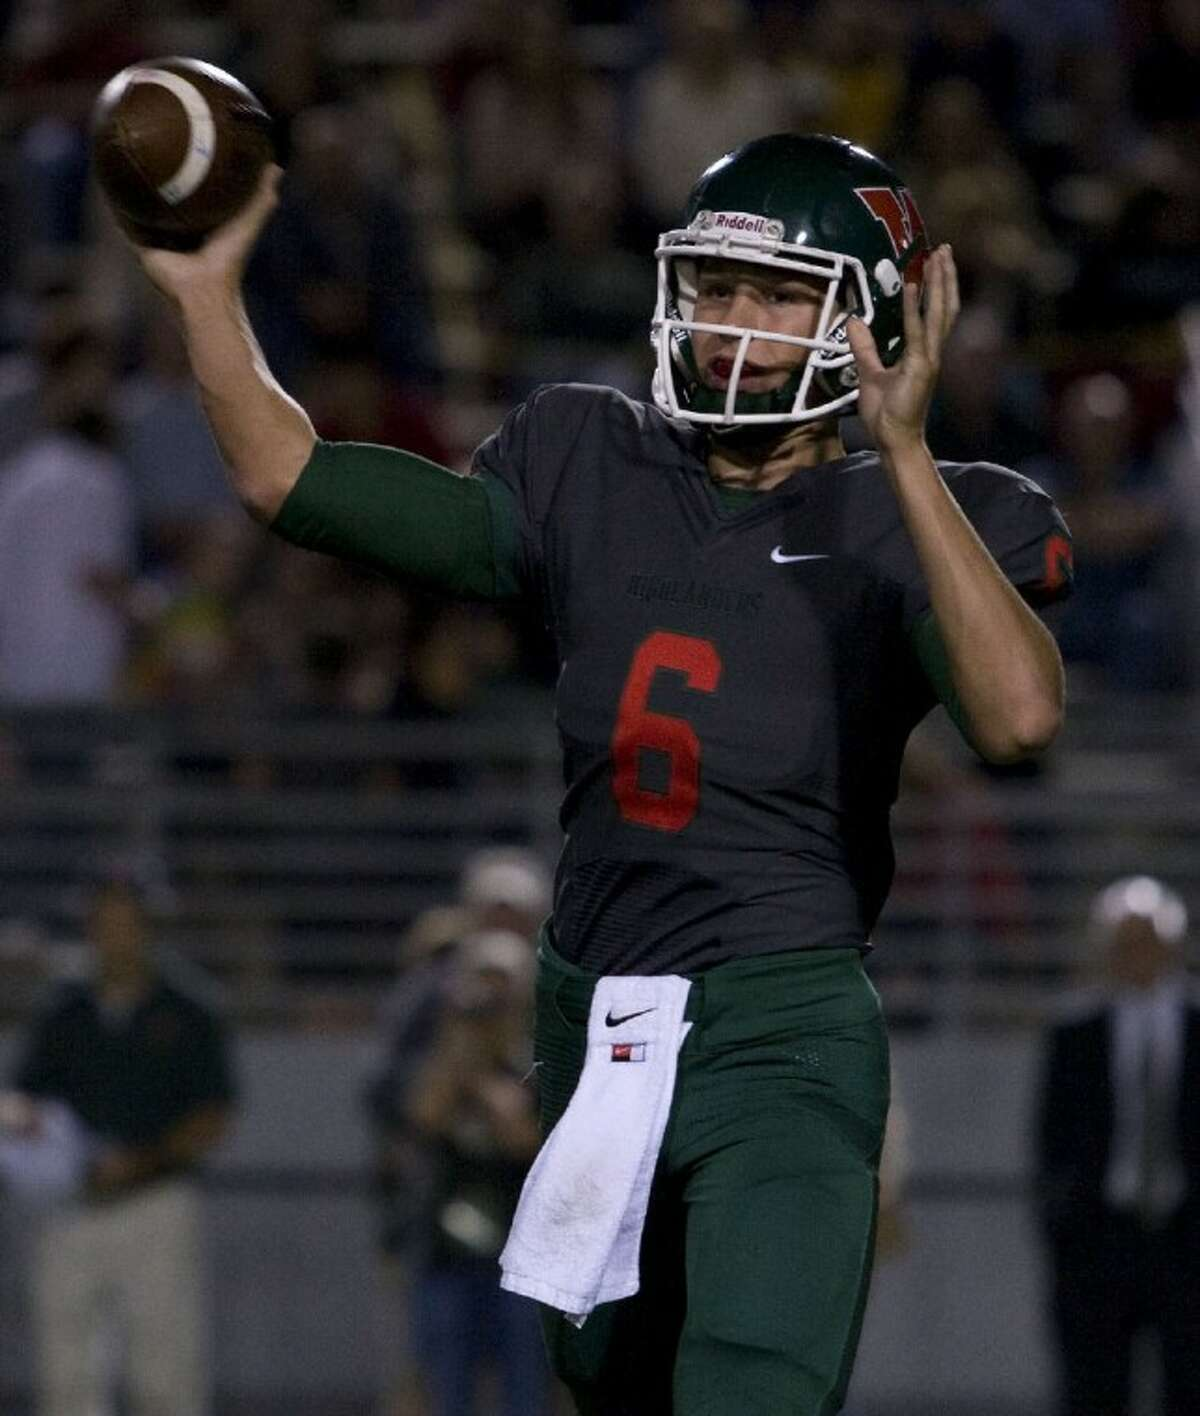 Quarterback Blaine Gillespie and The Woodlands face Round Rock Westwood in the Class 5A Division I playoffs in Waco today.